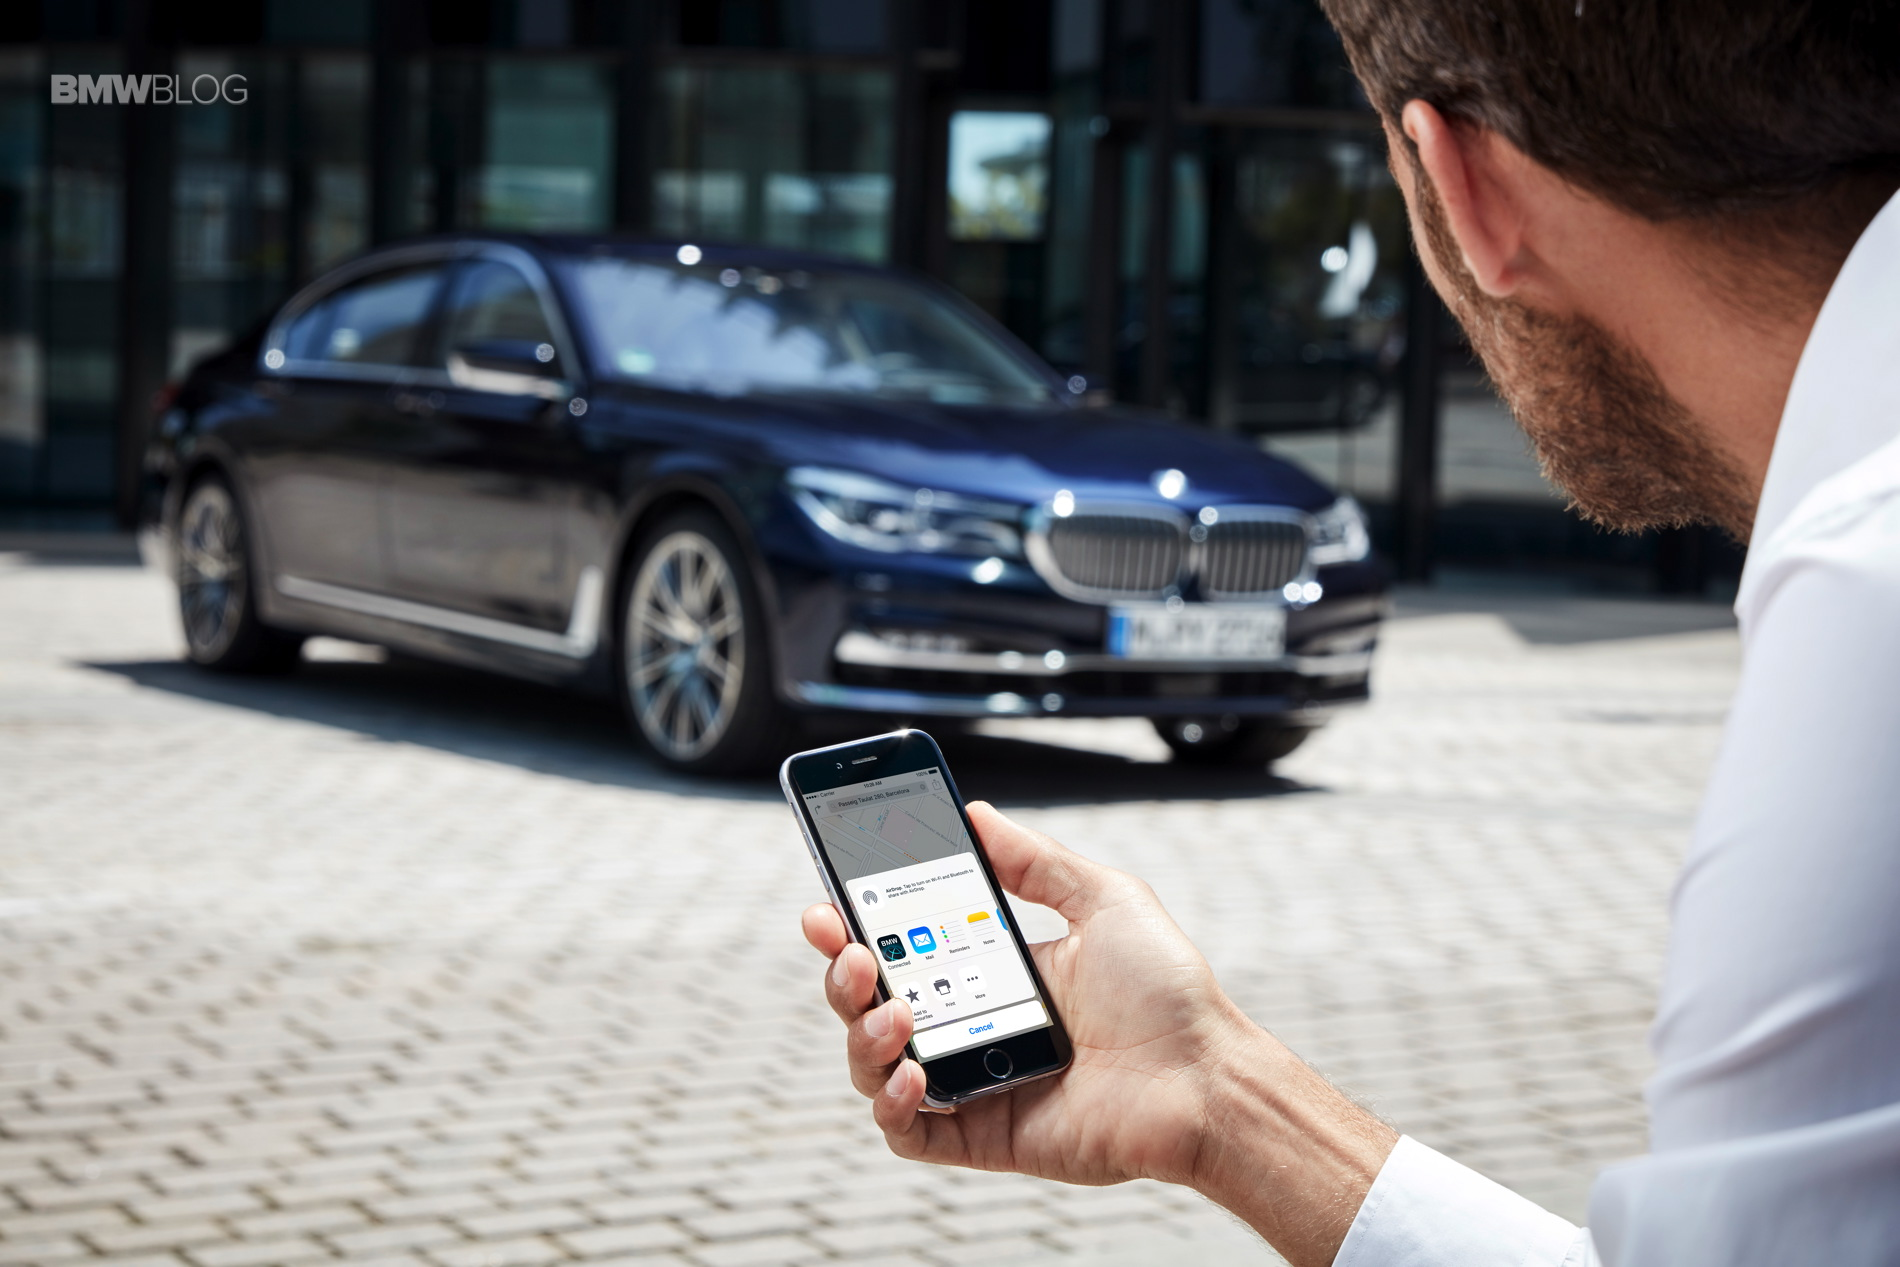 BMW connected services 5